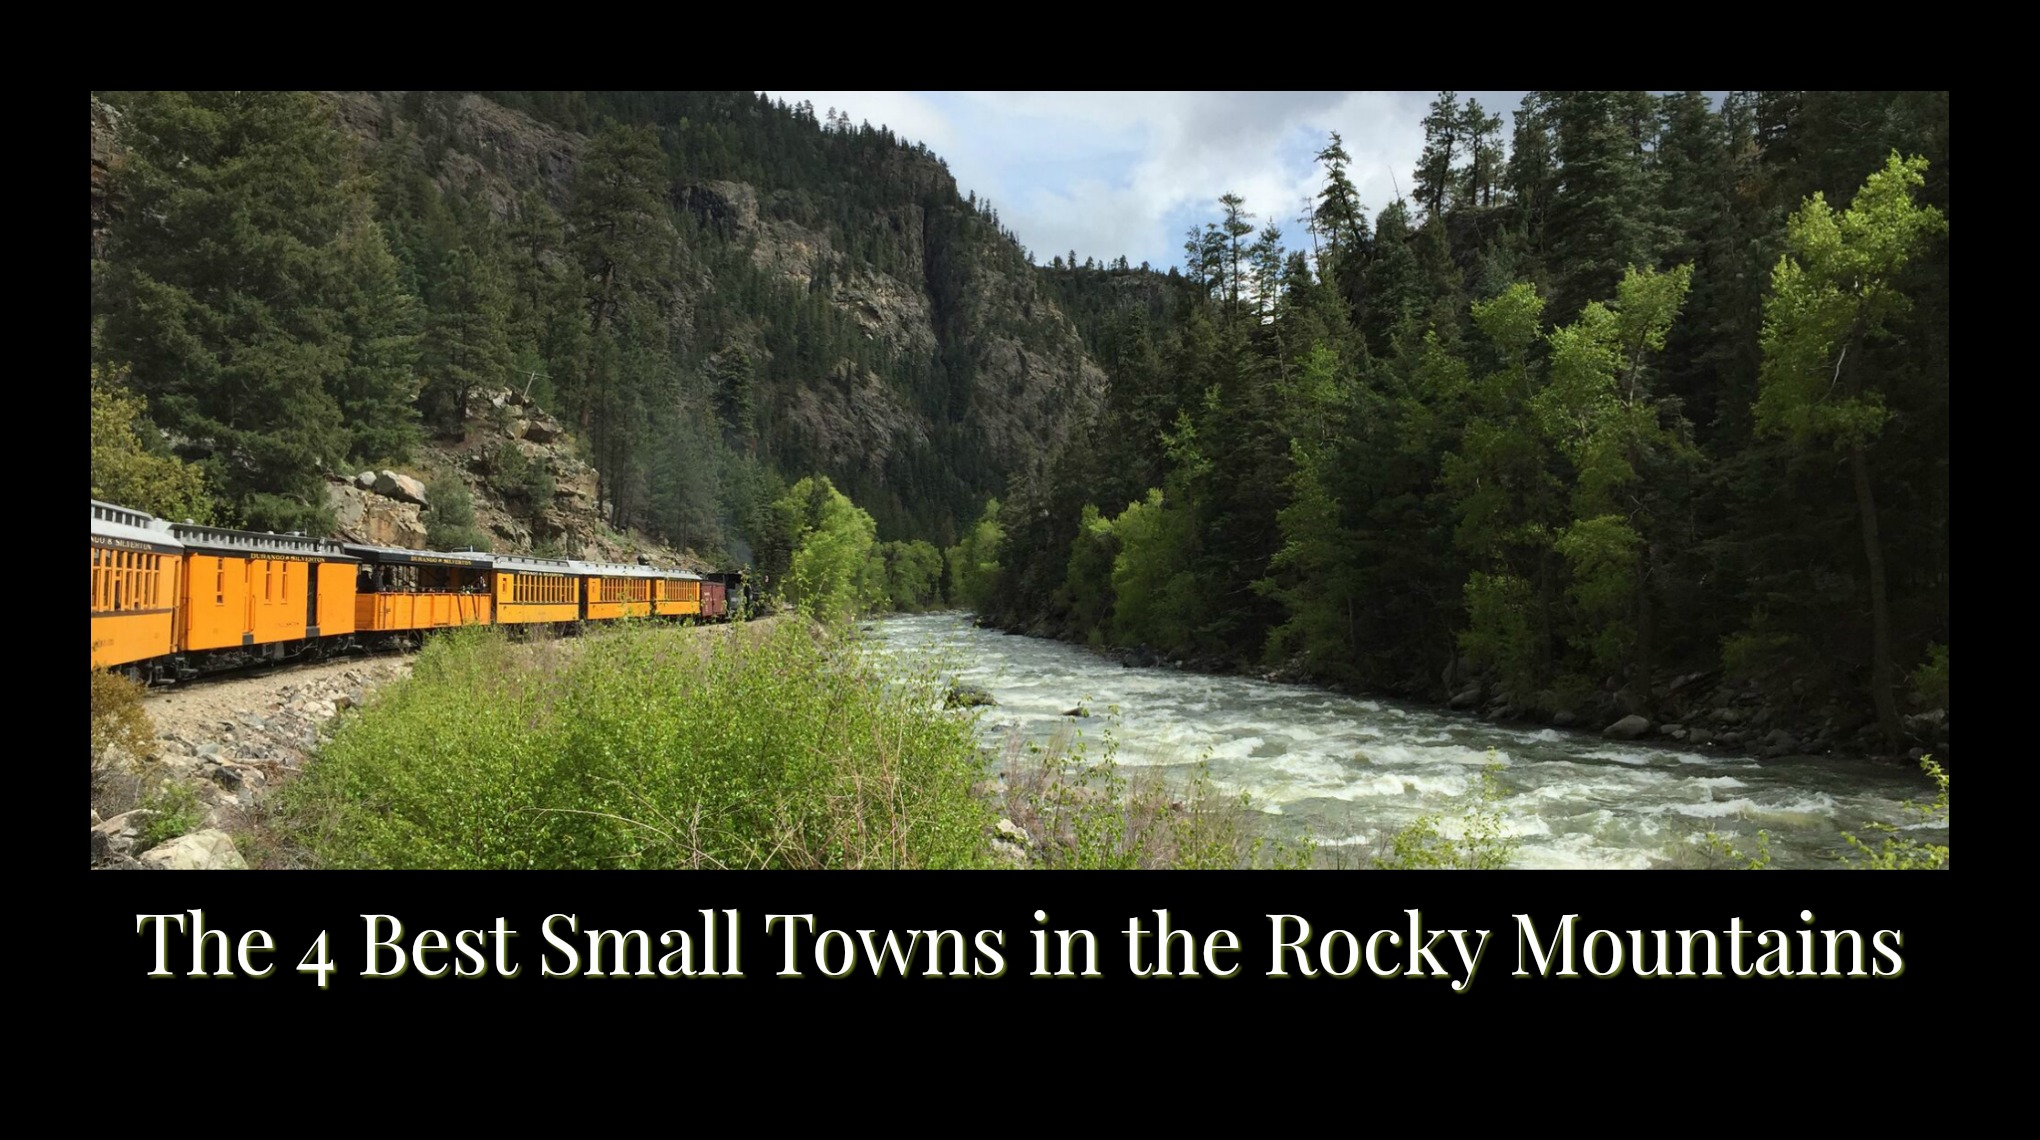 The 4 Best Small Towns in the Rocky Mountains